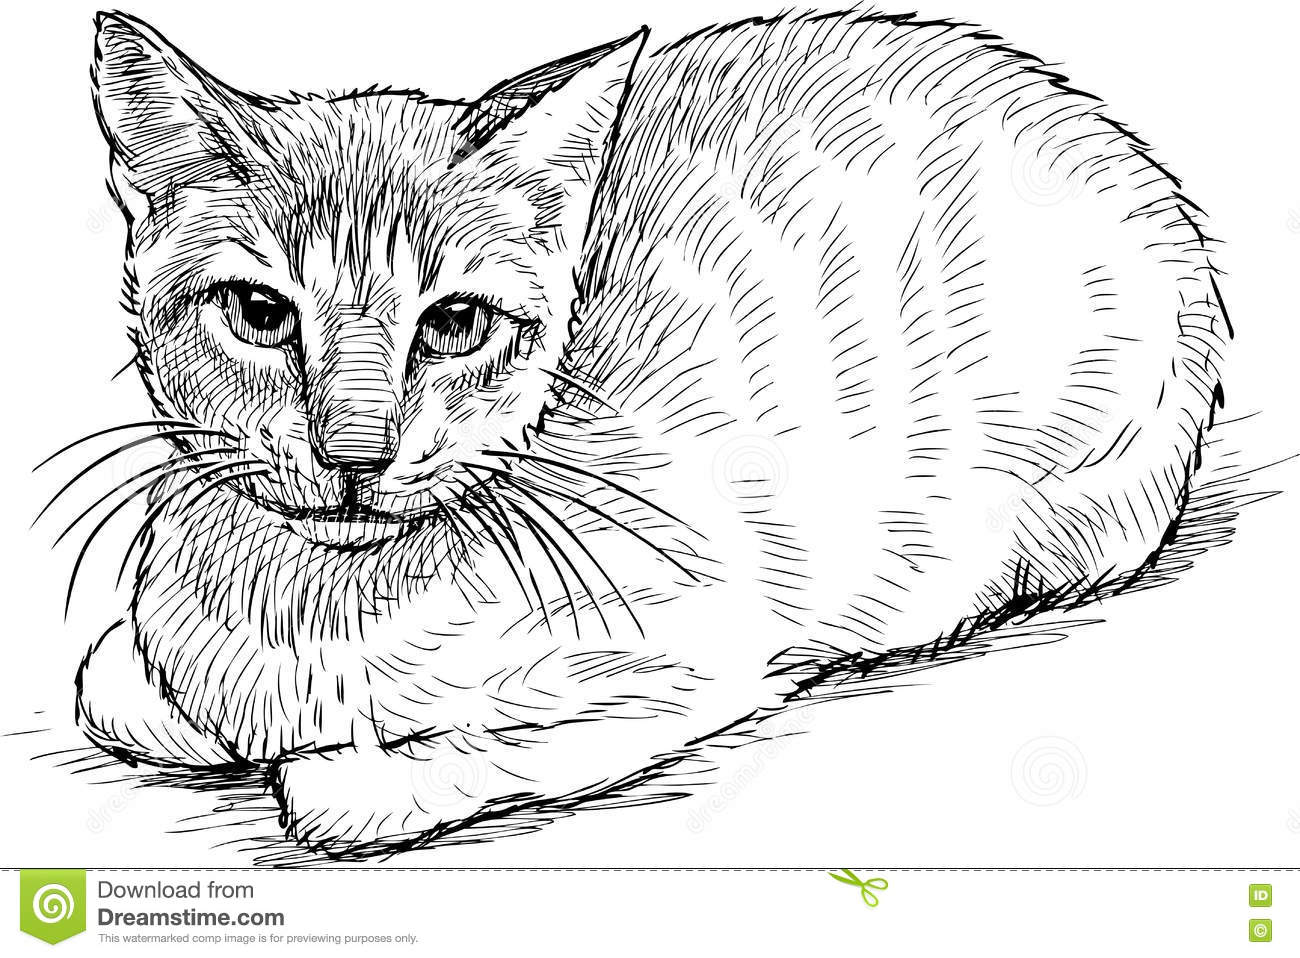 Serious house cat stock vector. Image of looking, drawn